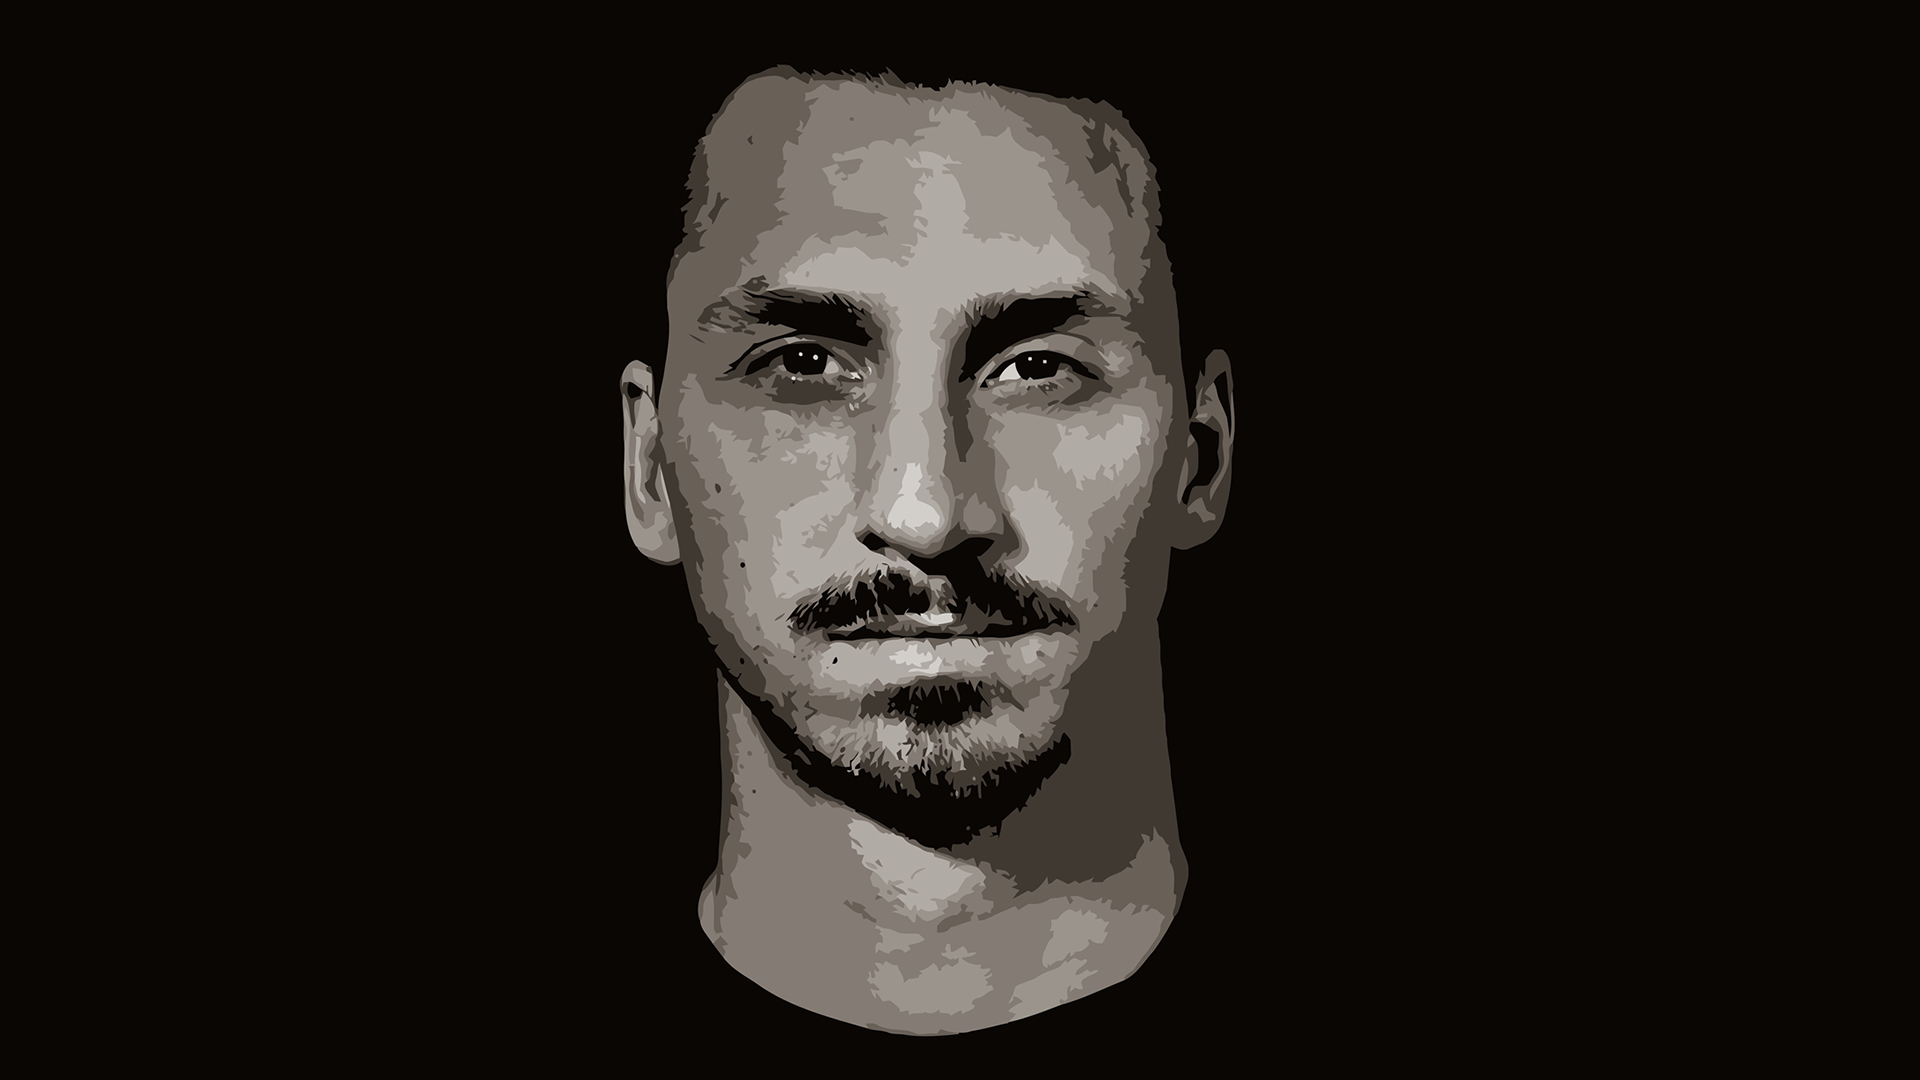 Zlatan Ibrahimovic Wallpapers Images Photos Pictures Backgrounds 1920x1080